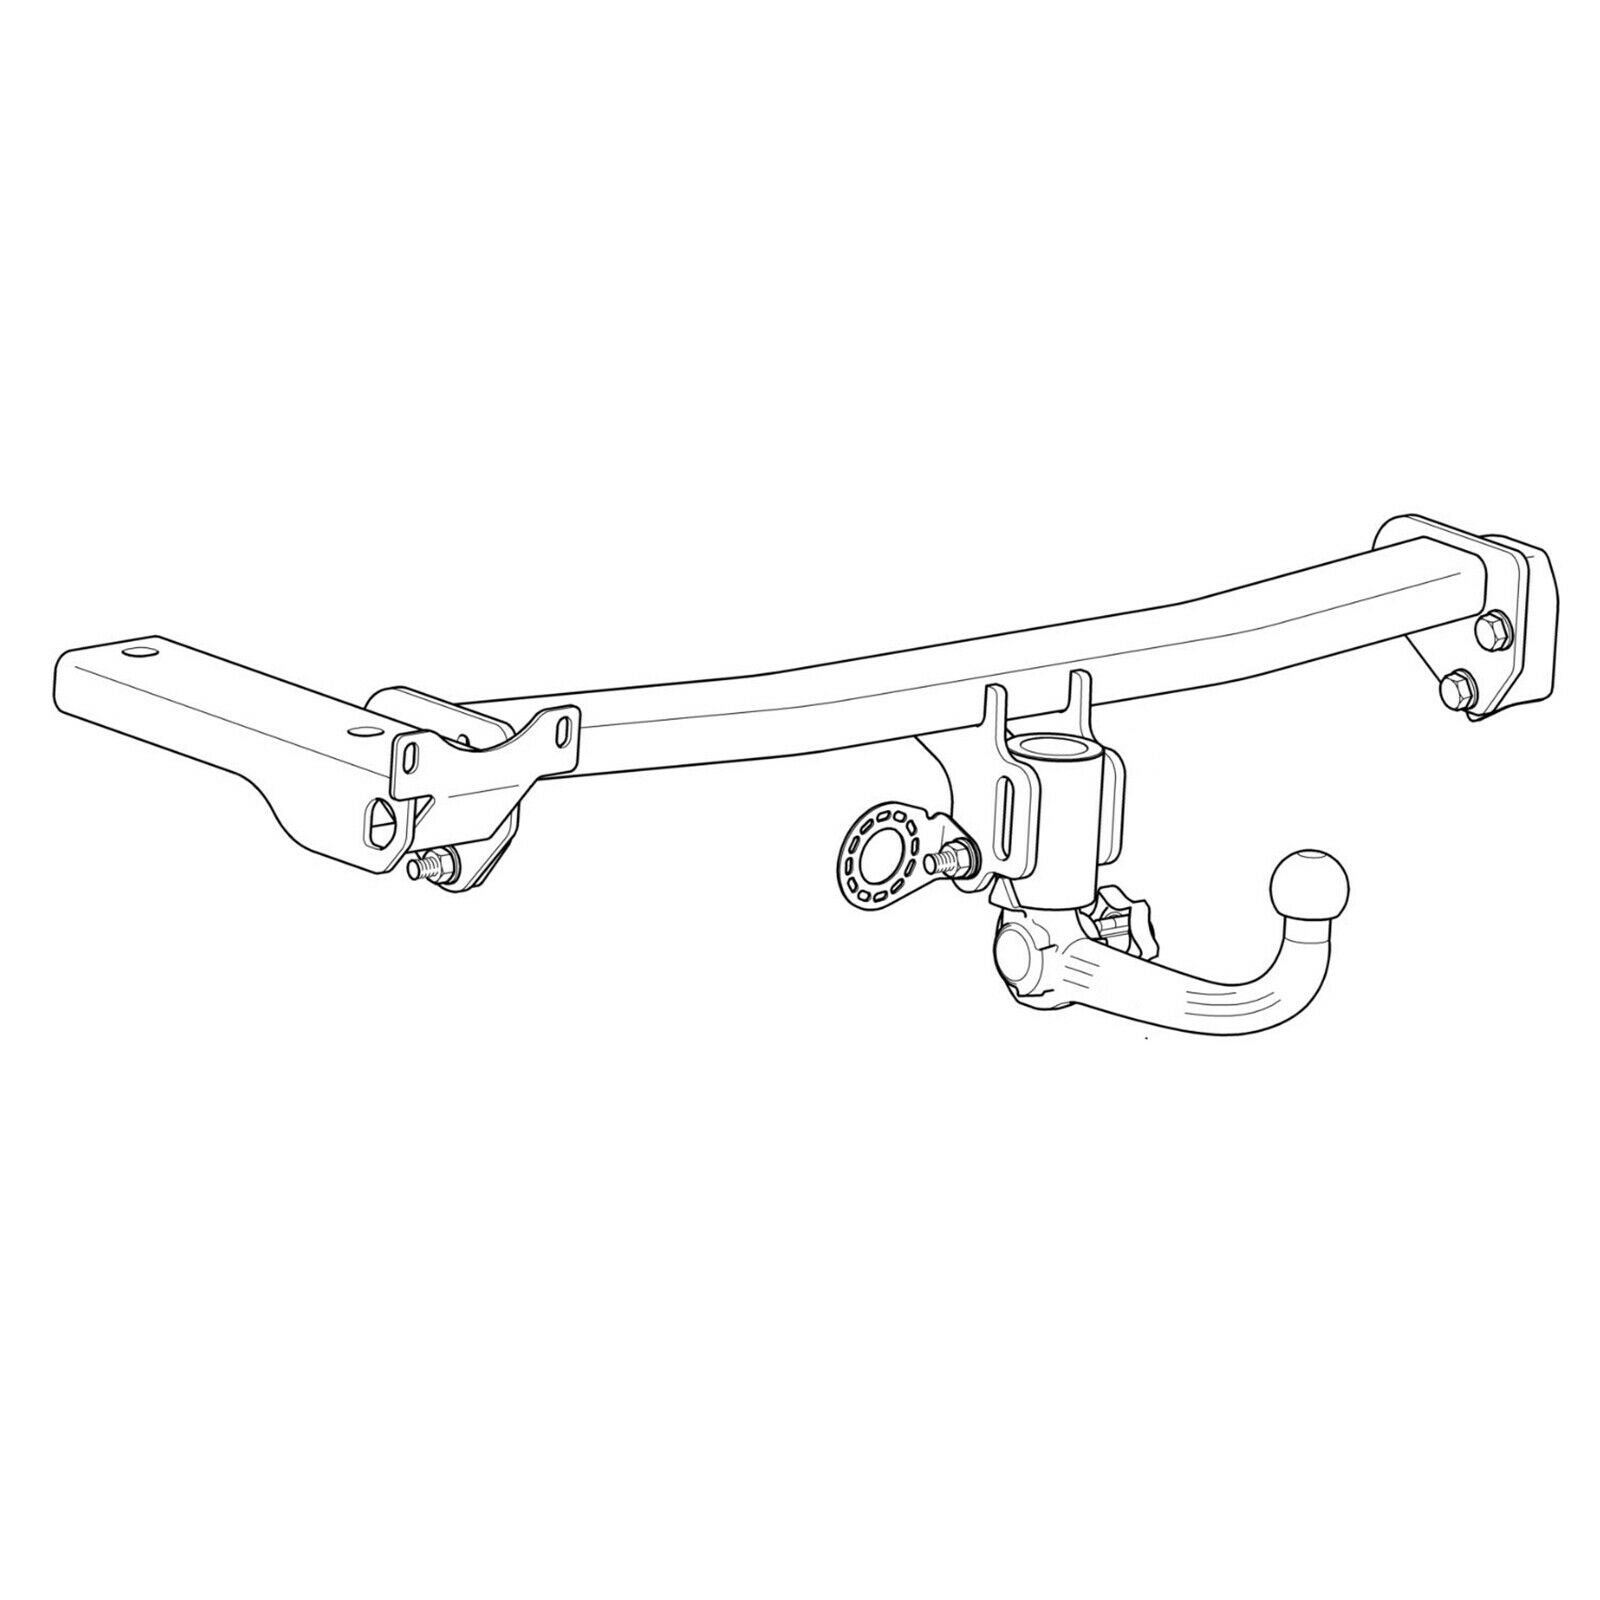 Westfalia Towbar for Land Rover Freelander 2 2007-2015